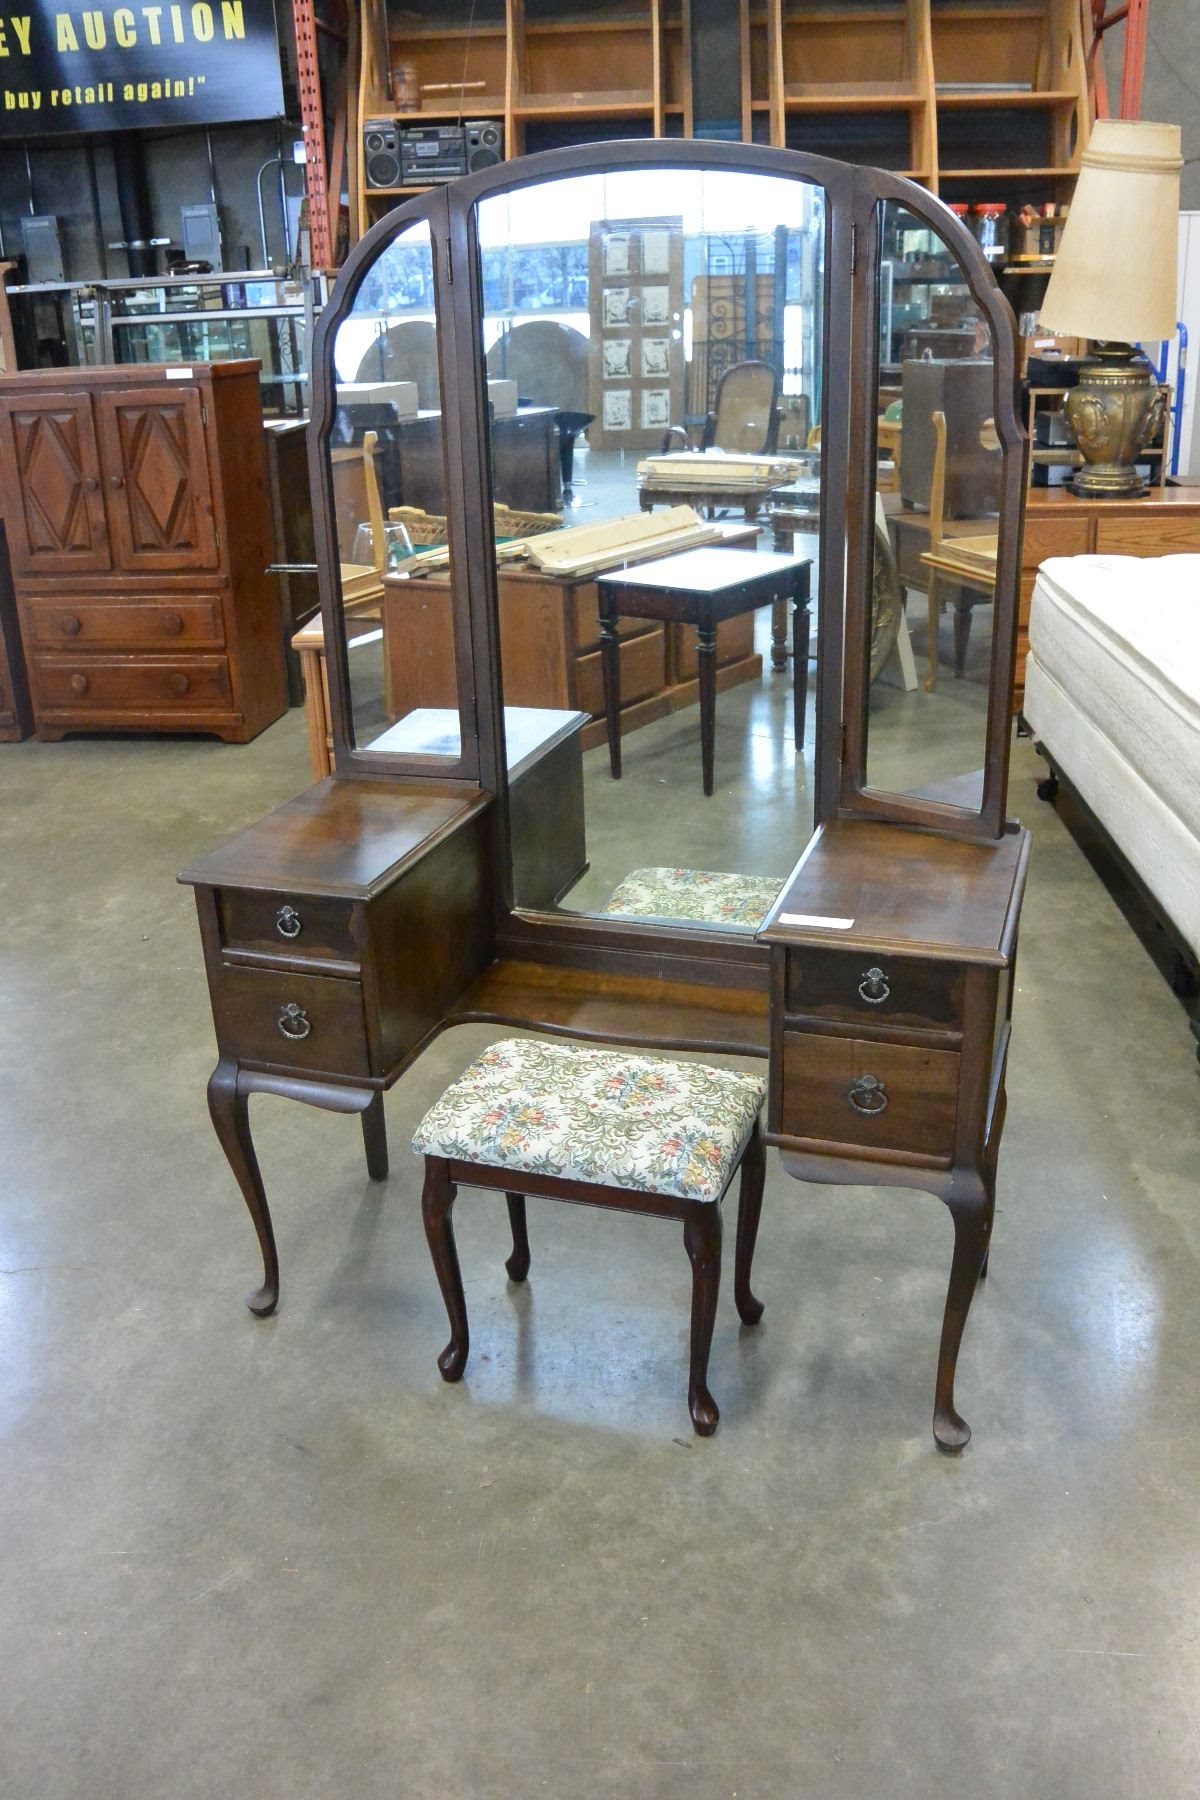 Vintage Vanity Dresser With Mirror And Stool